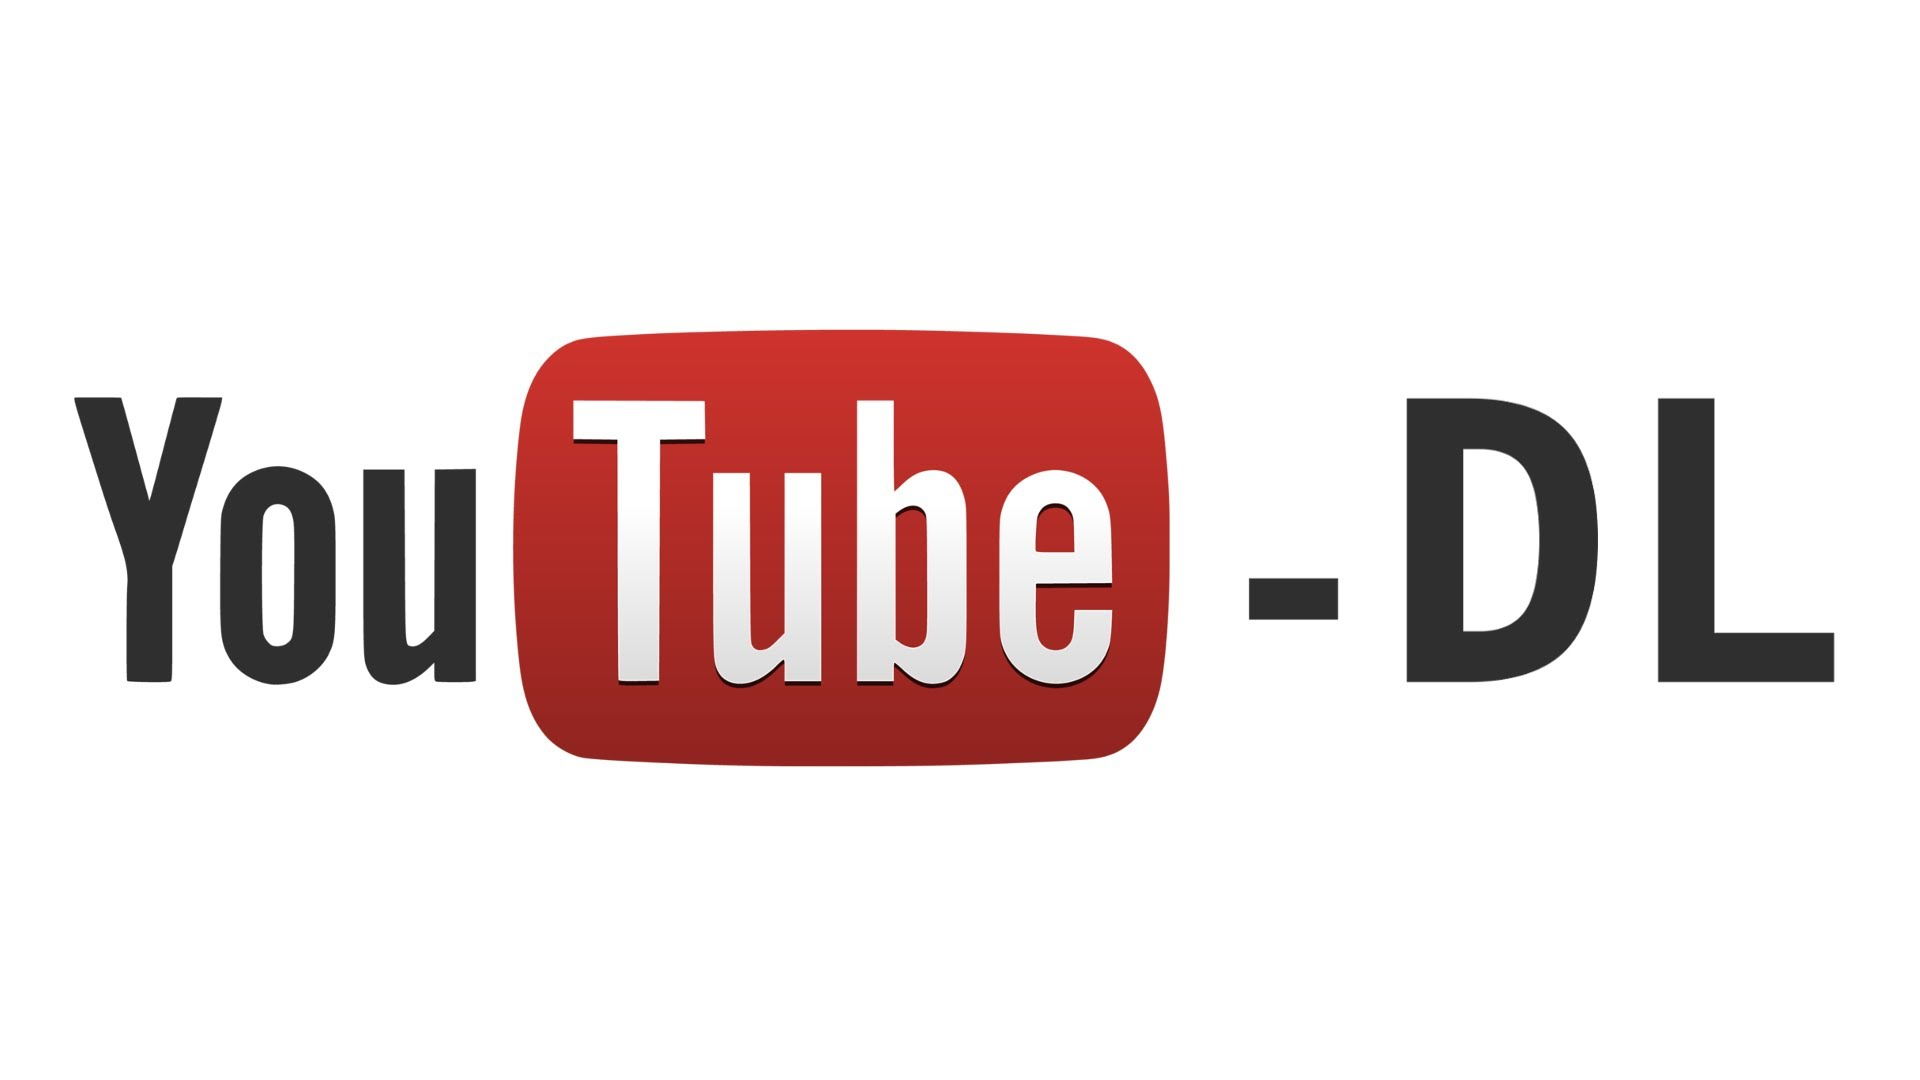 Youtube-DL free command line software to easily Download videos